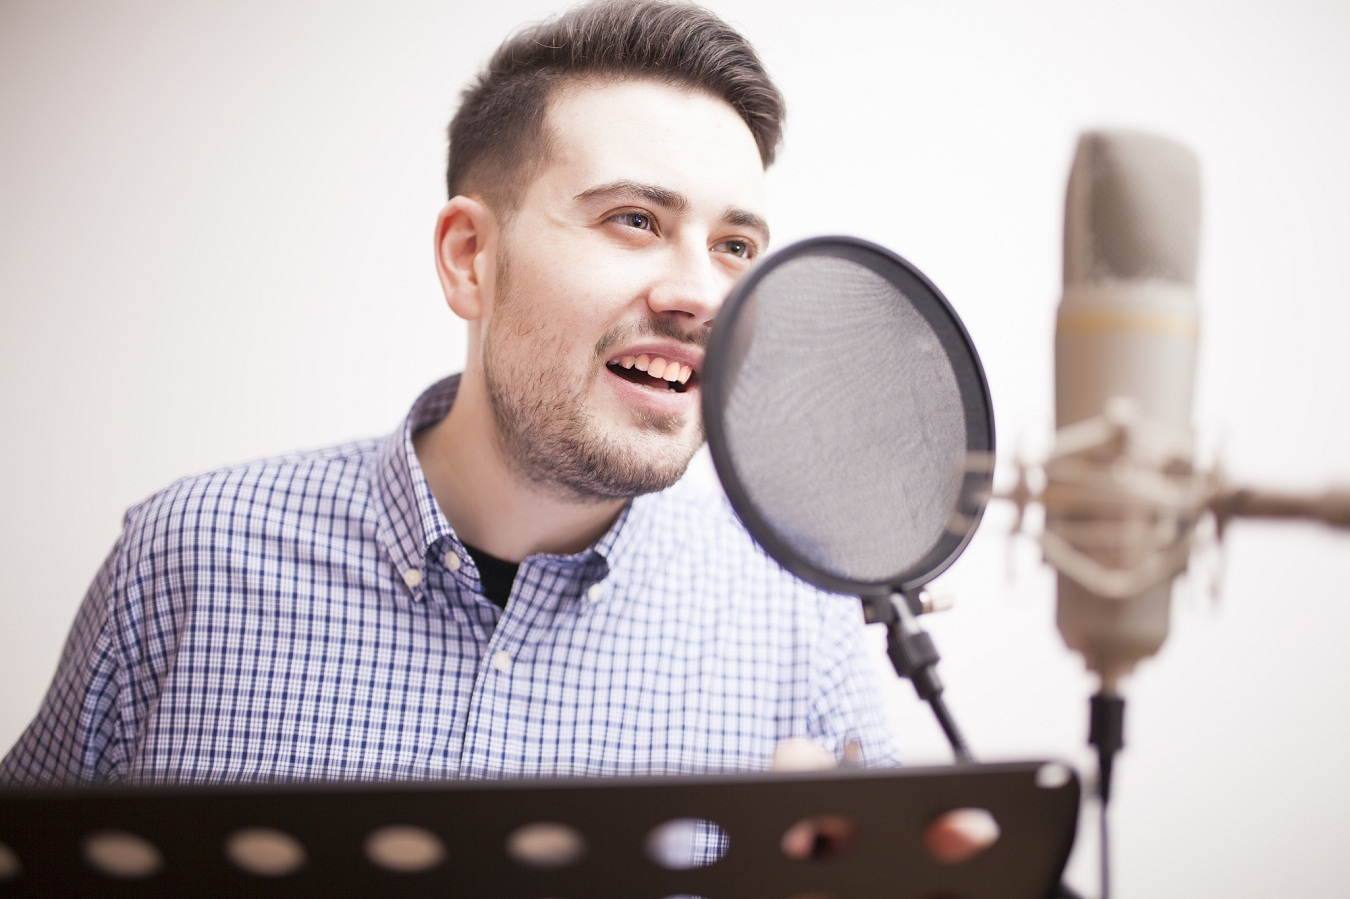 Top 4 Factors to Consider When Choosing Voiceover Companies